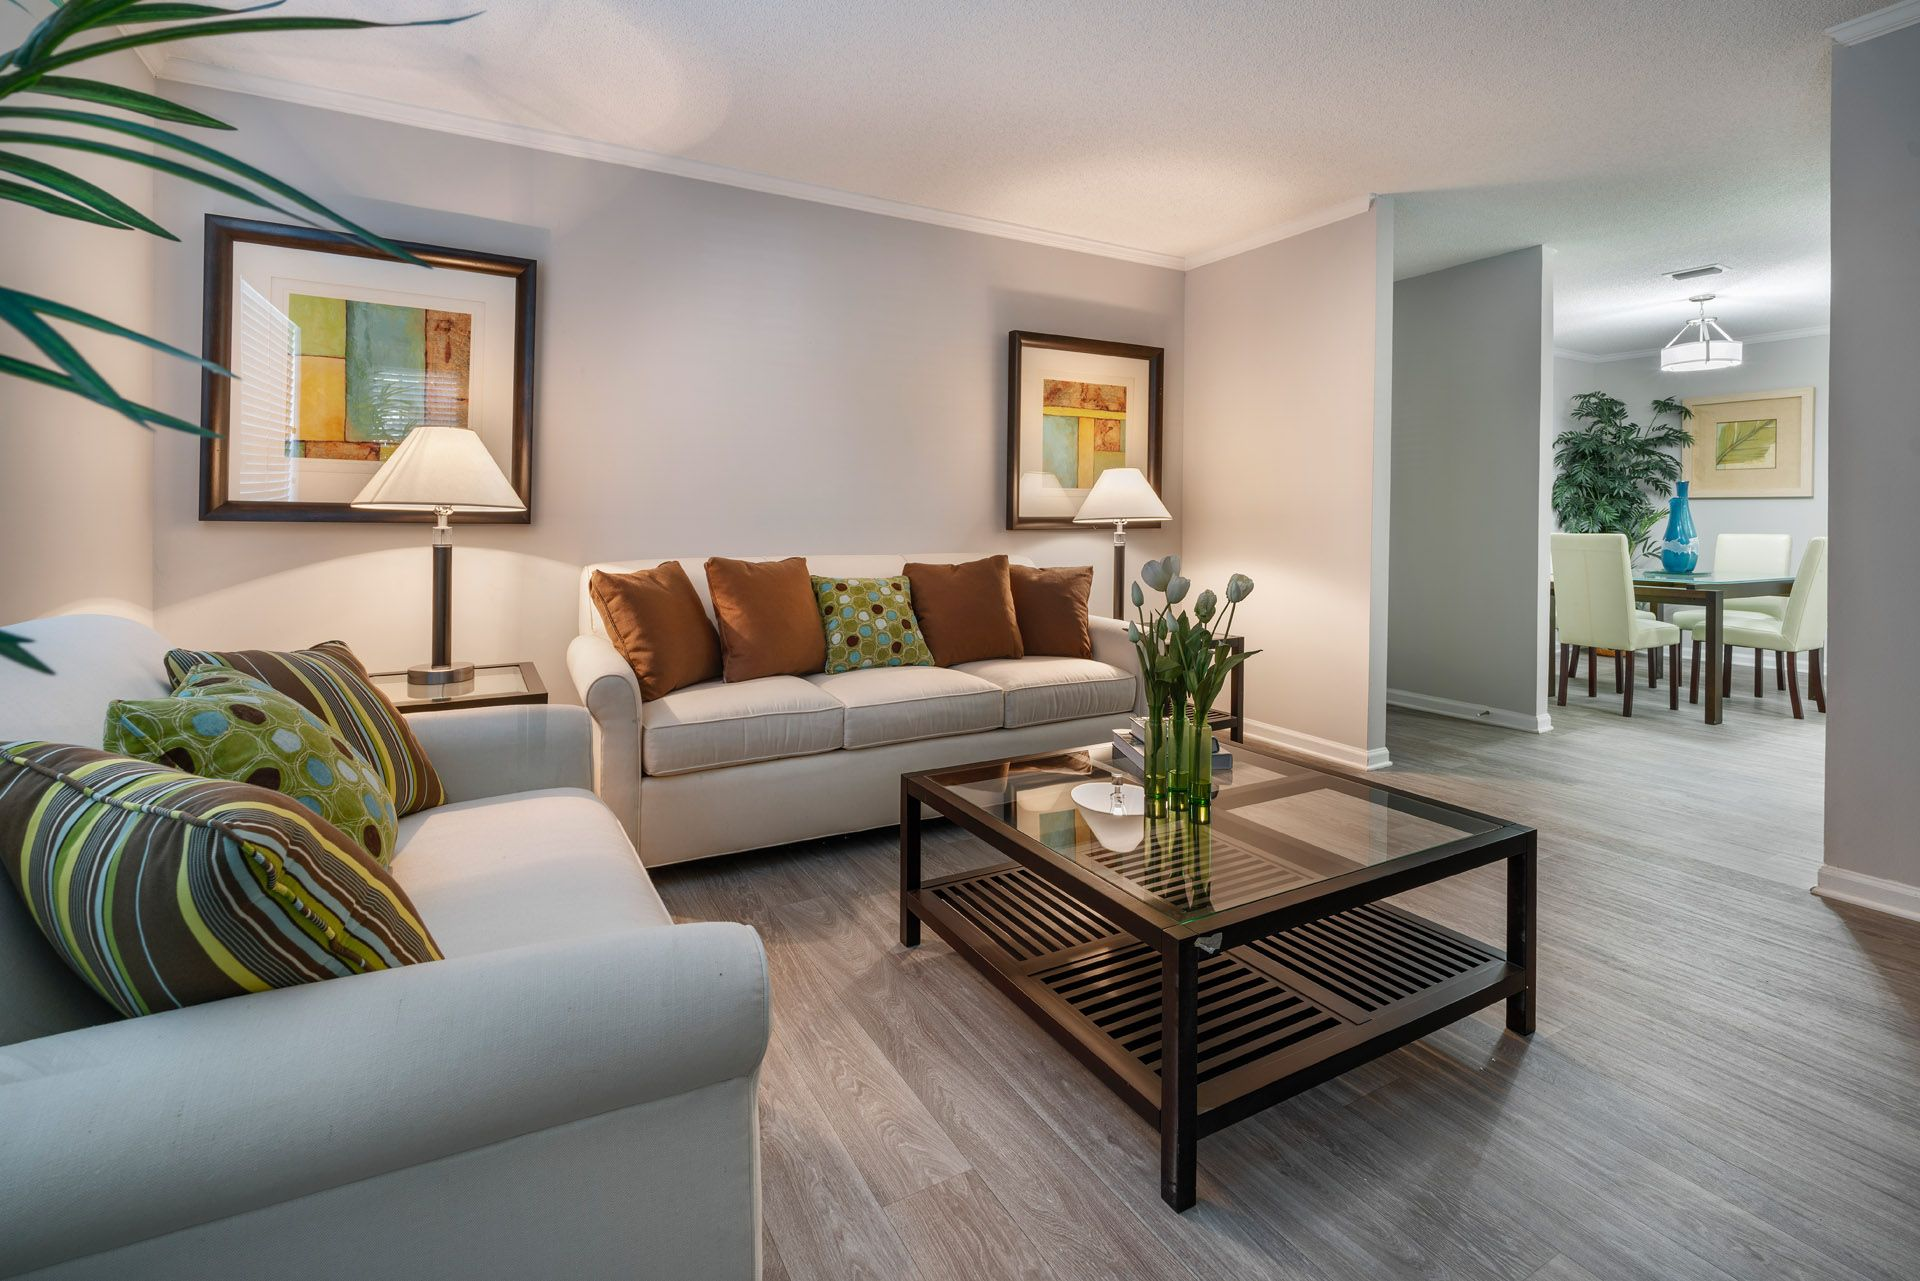 Living room with couches and coffee table